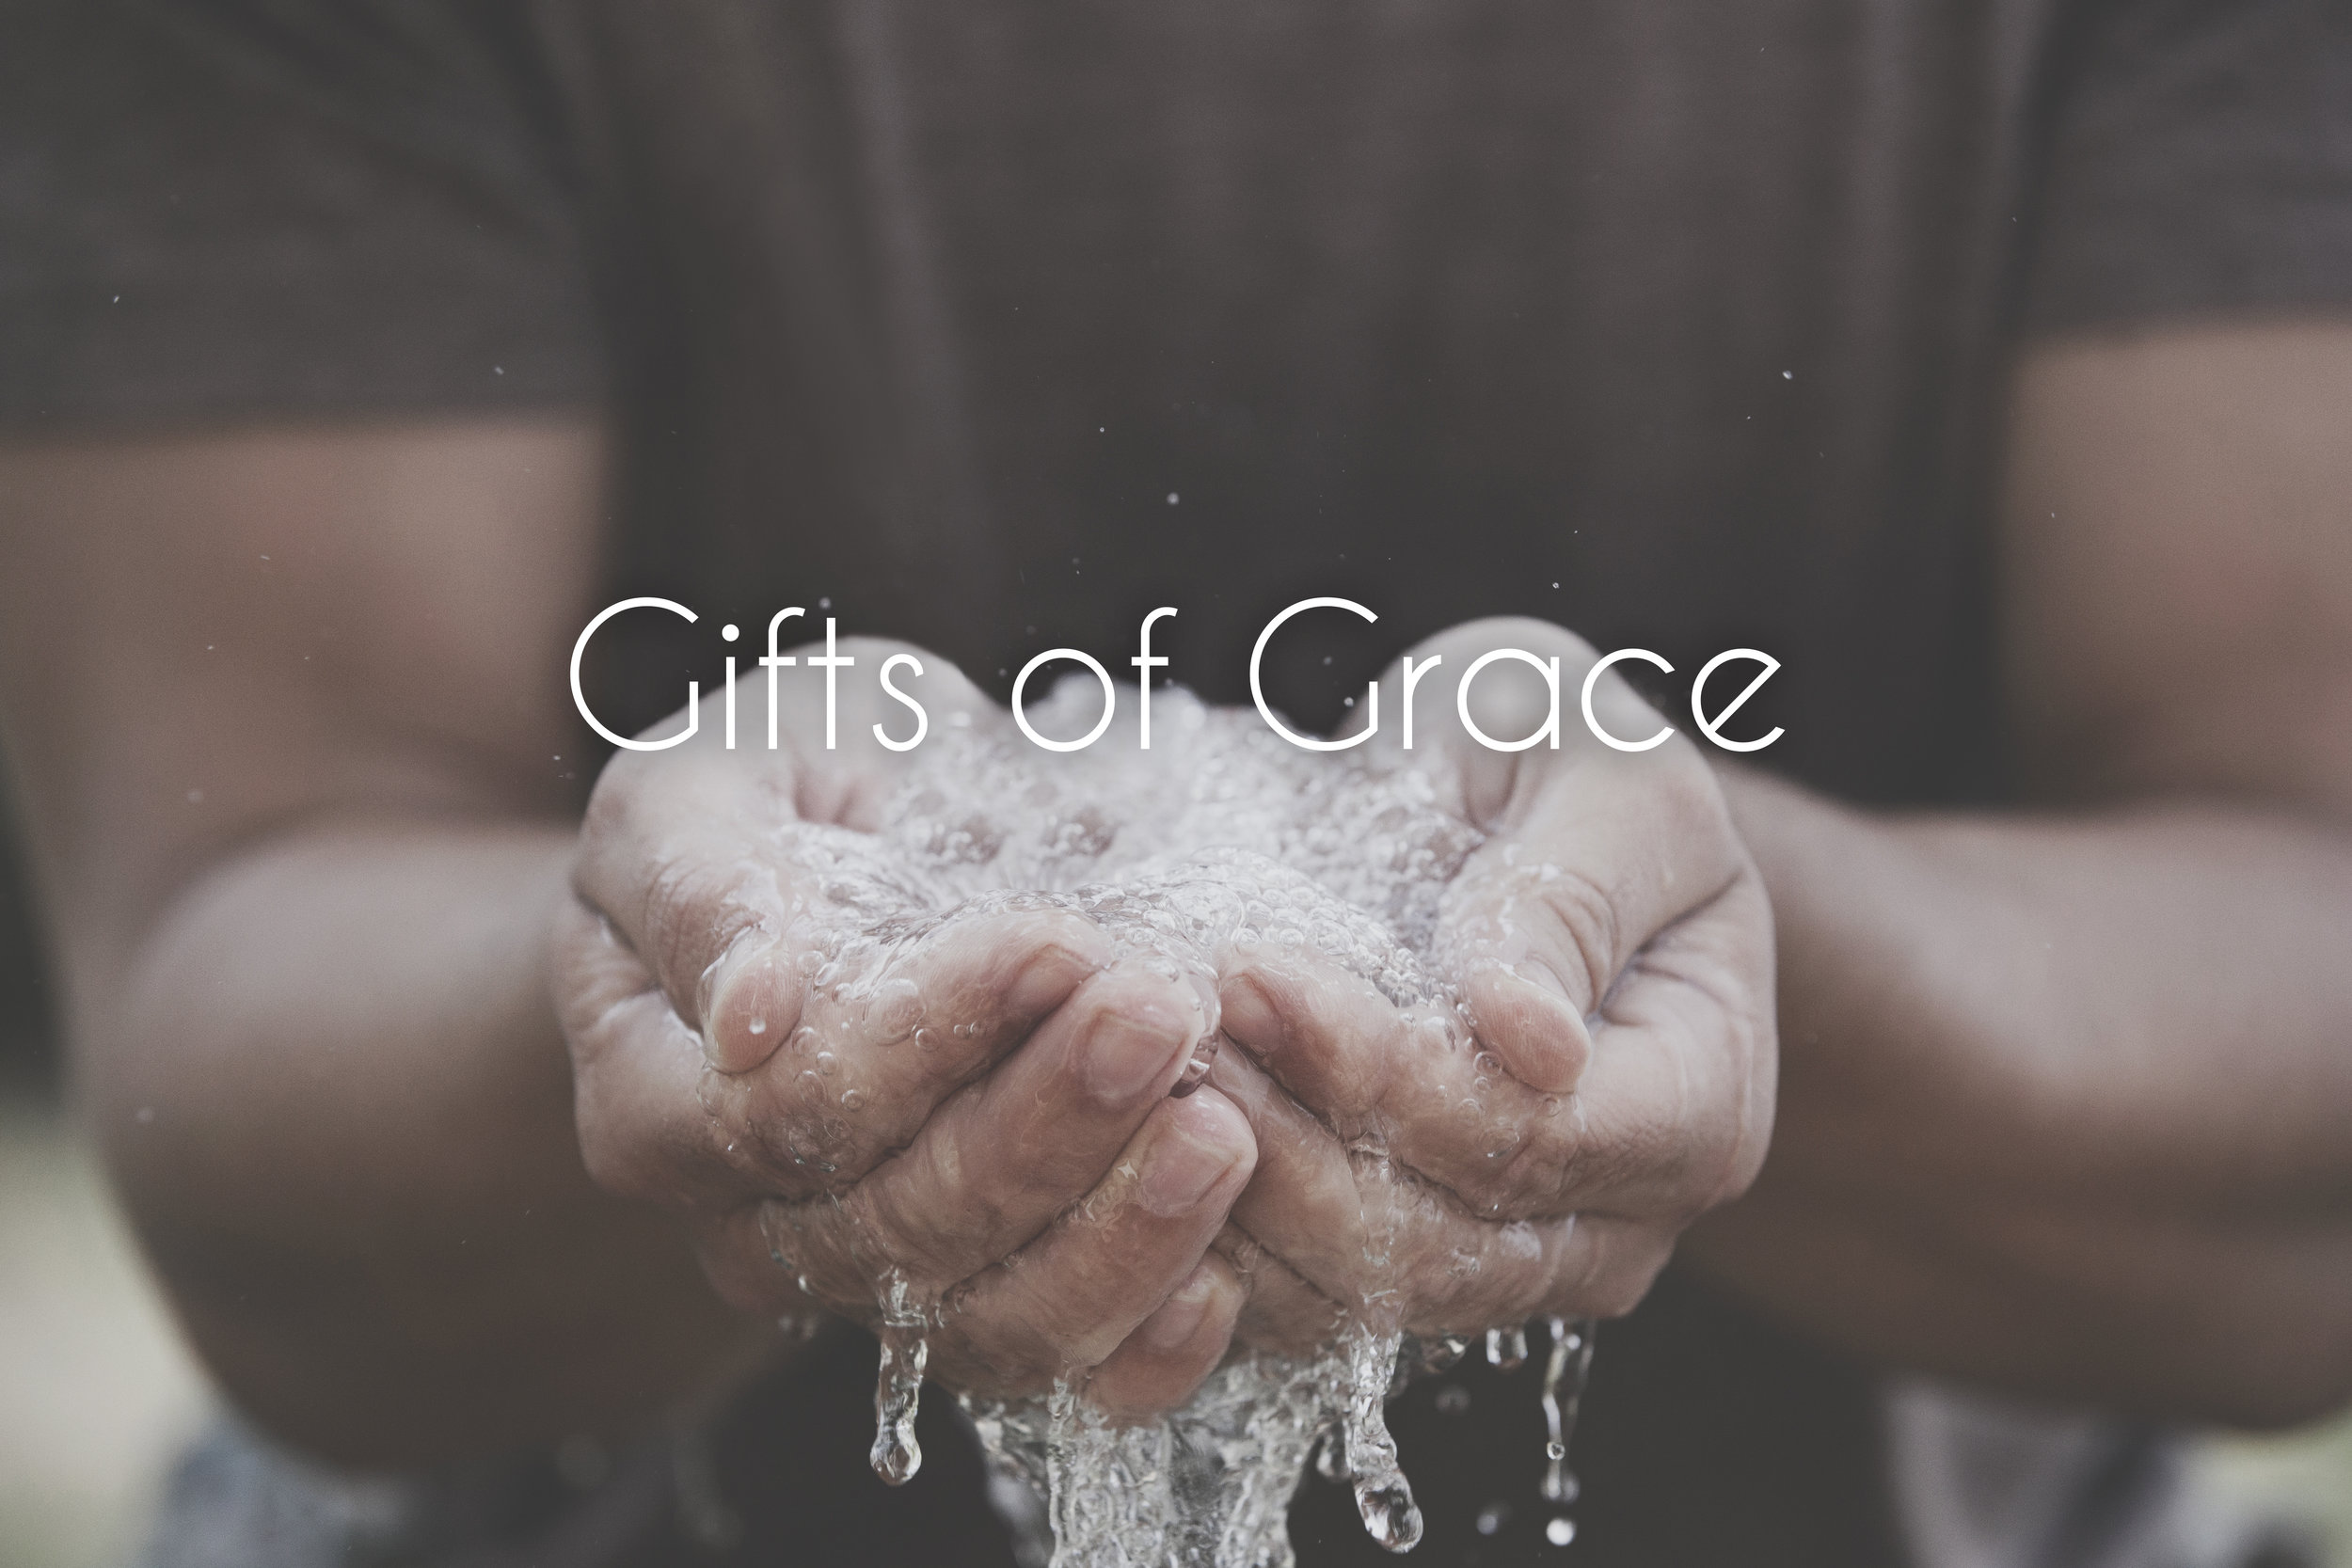 gifts of grace.jpg